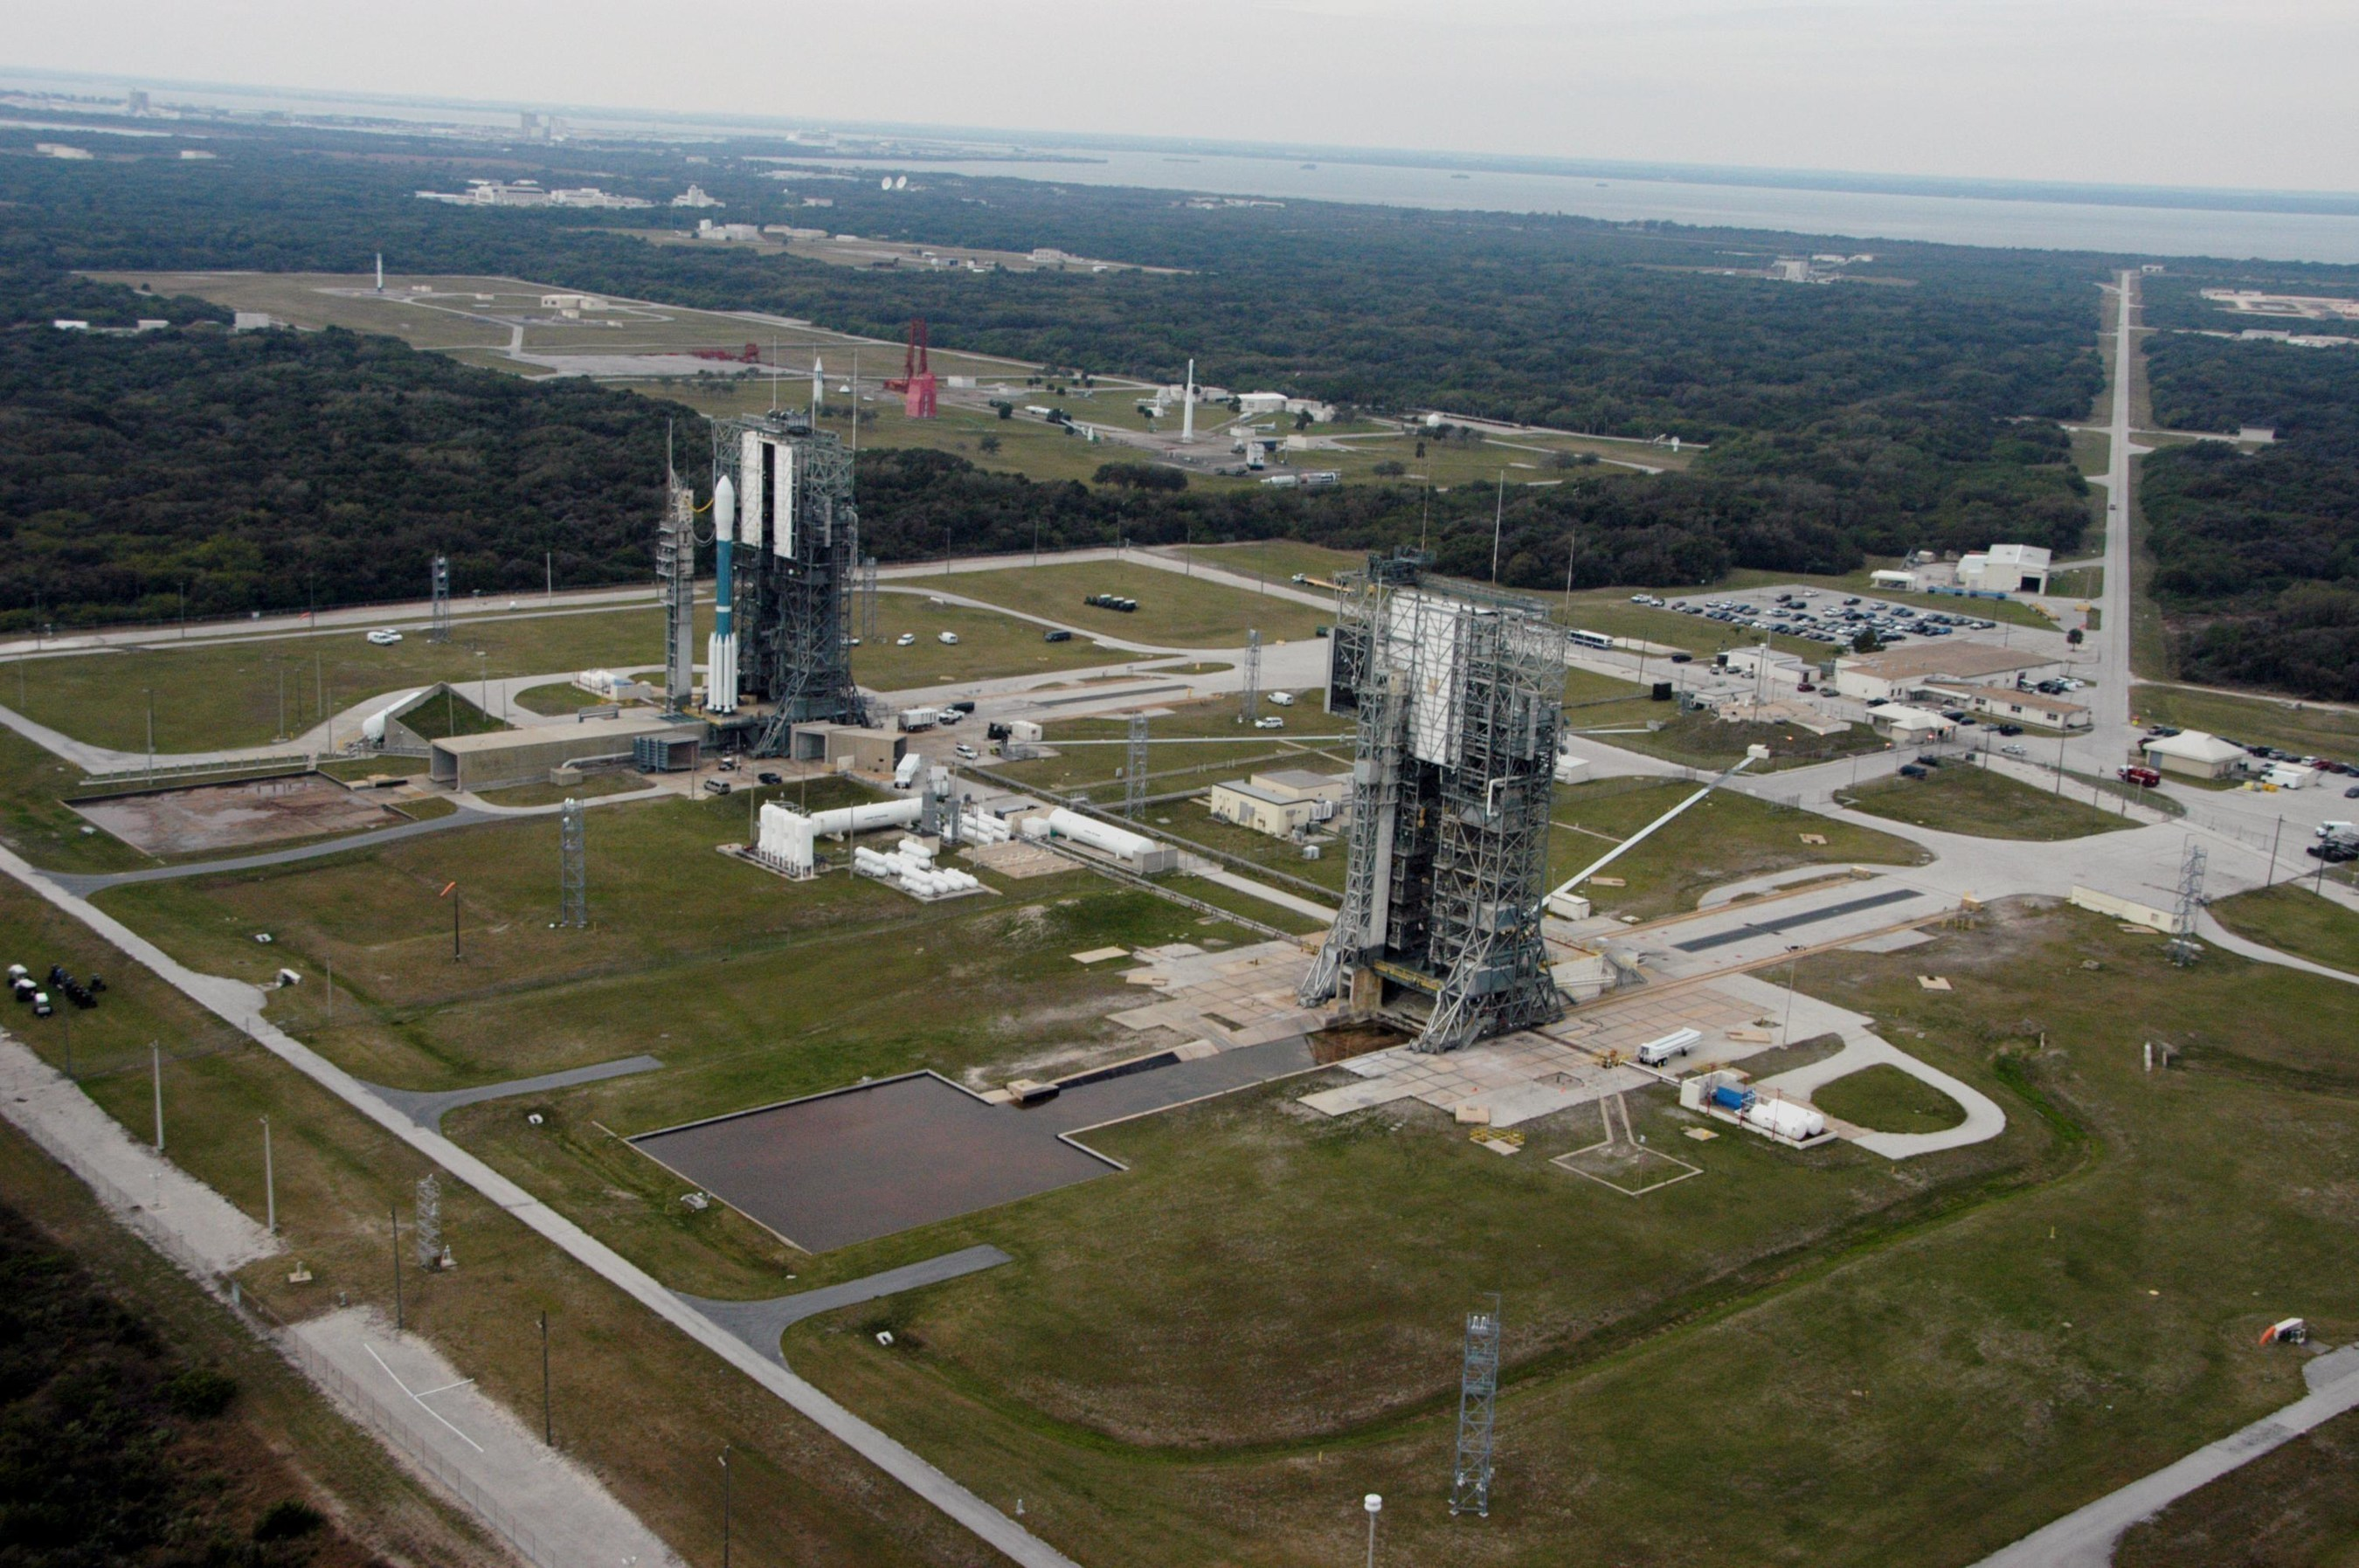 Space Launch Complex 17 at Cape Canaveral [2007]